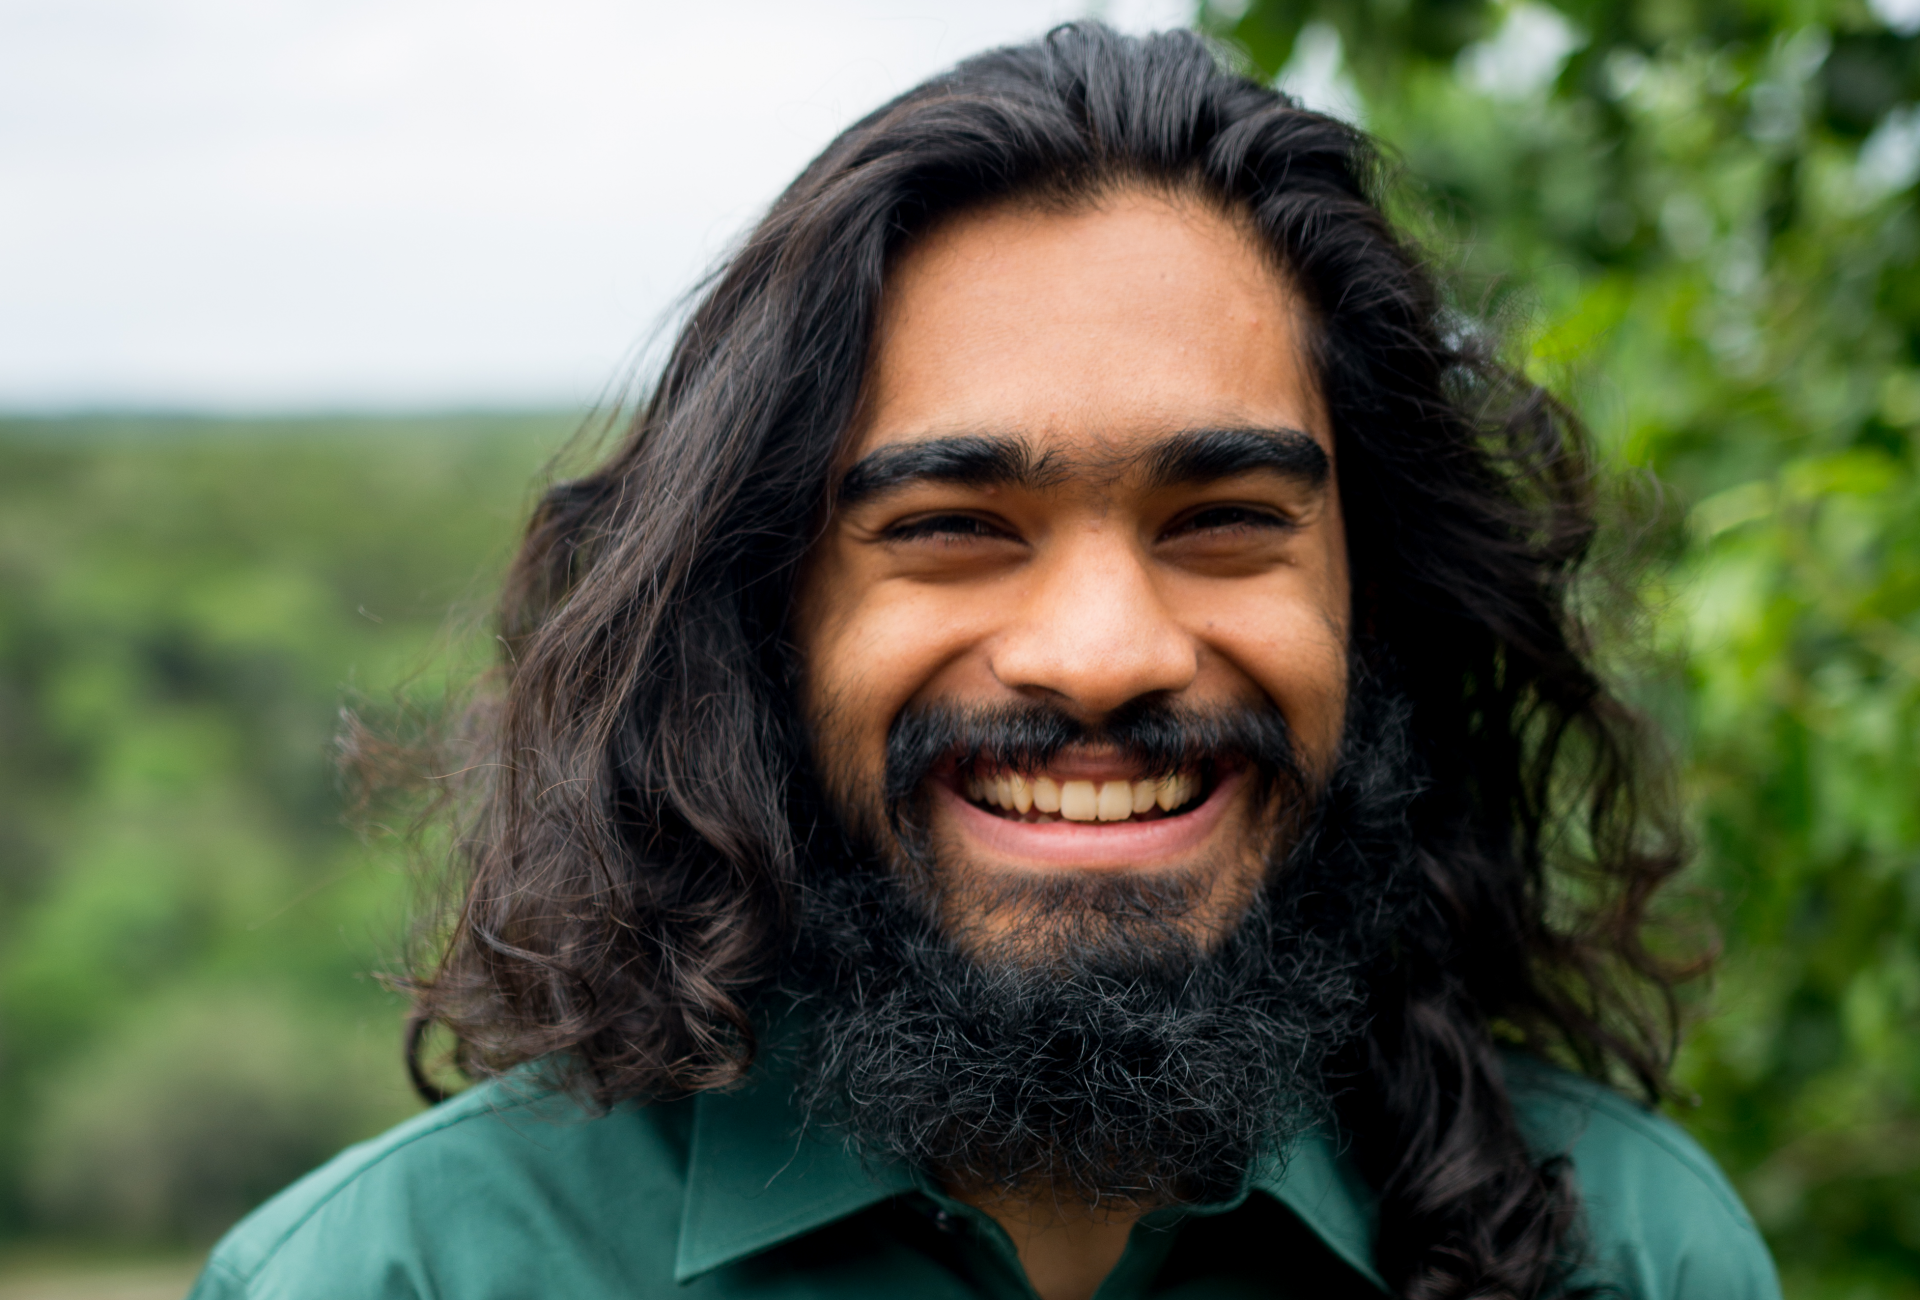 A portrait of Akash Thakkar standing outside and smiling widely with greenery in the background.